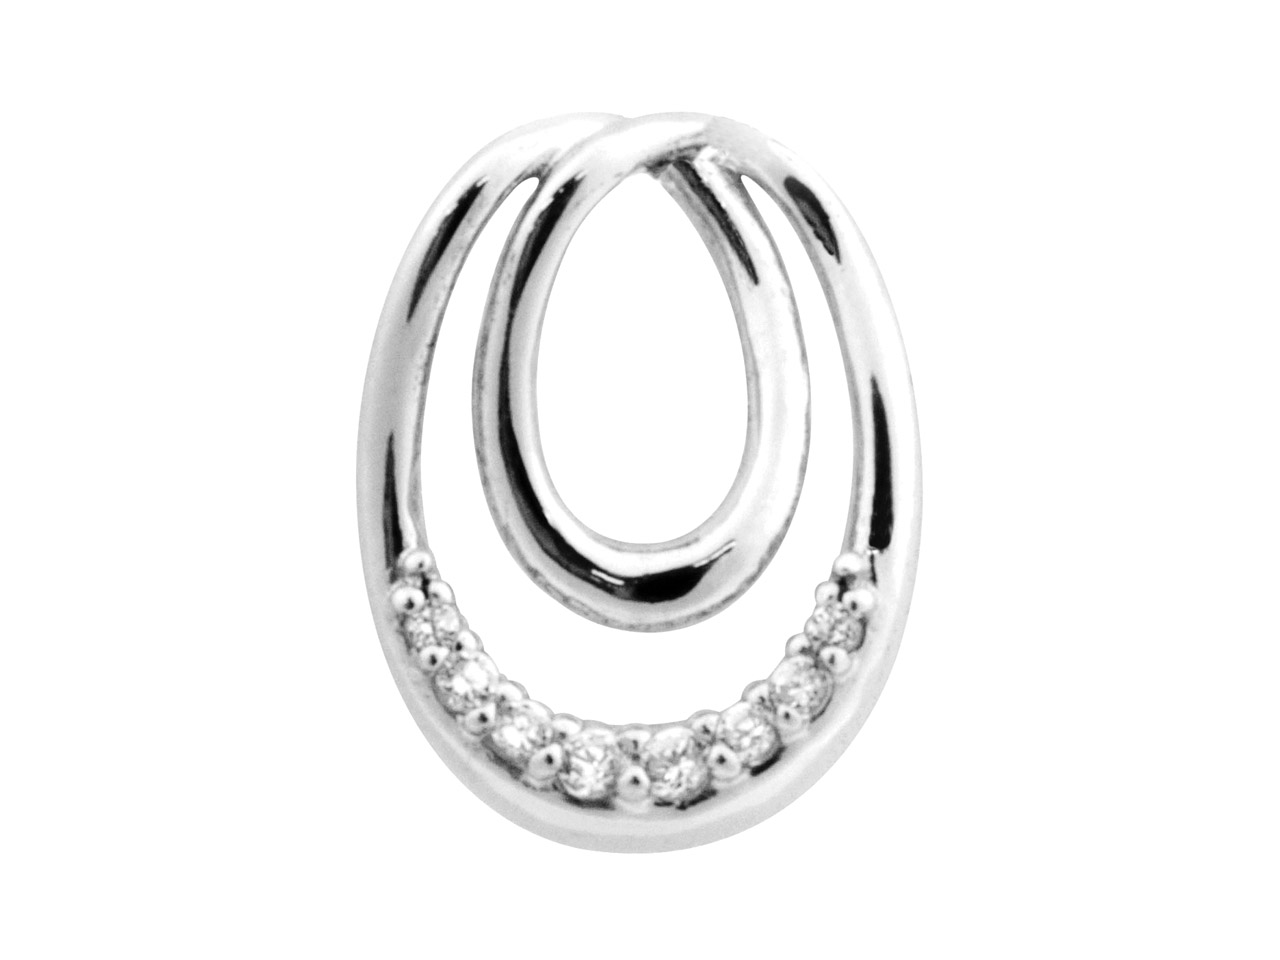 Sterling Silver Pendant            Cubic Zirconia Eternal Loop 8      Graduated White Cz's